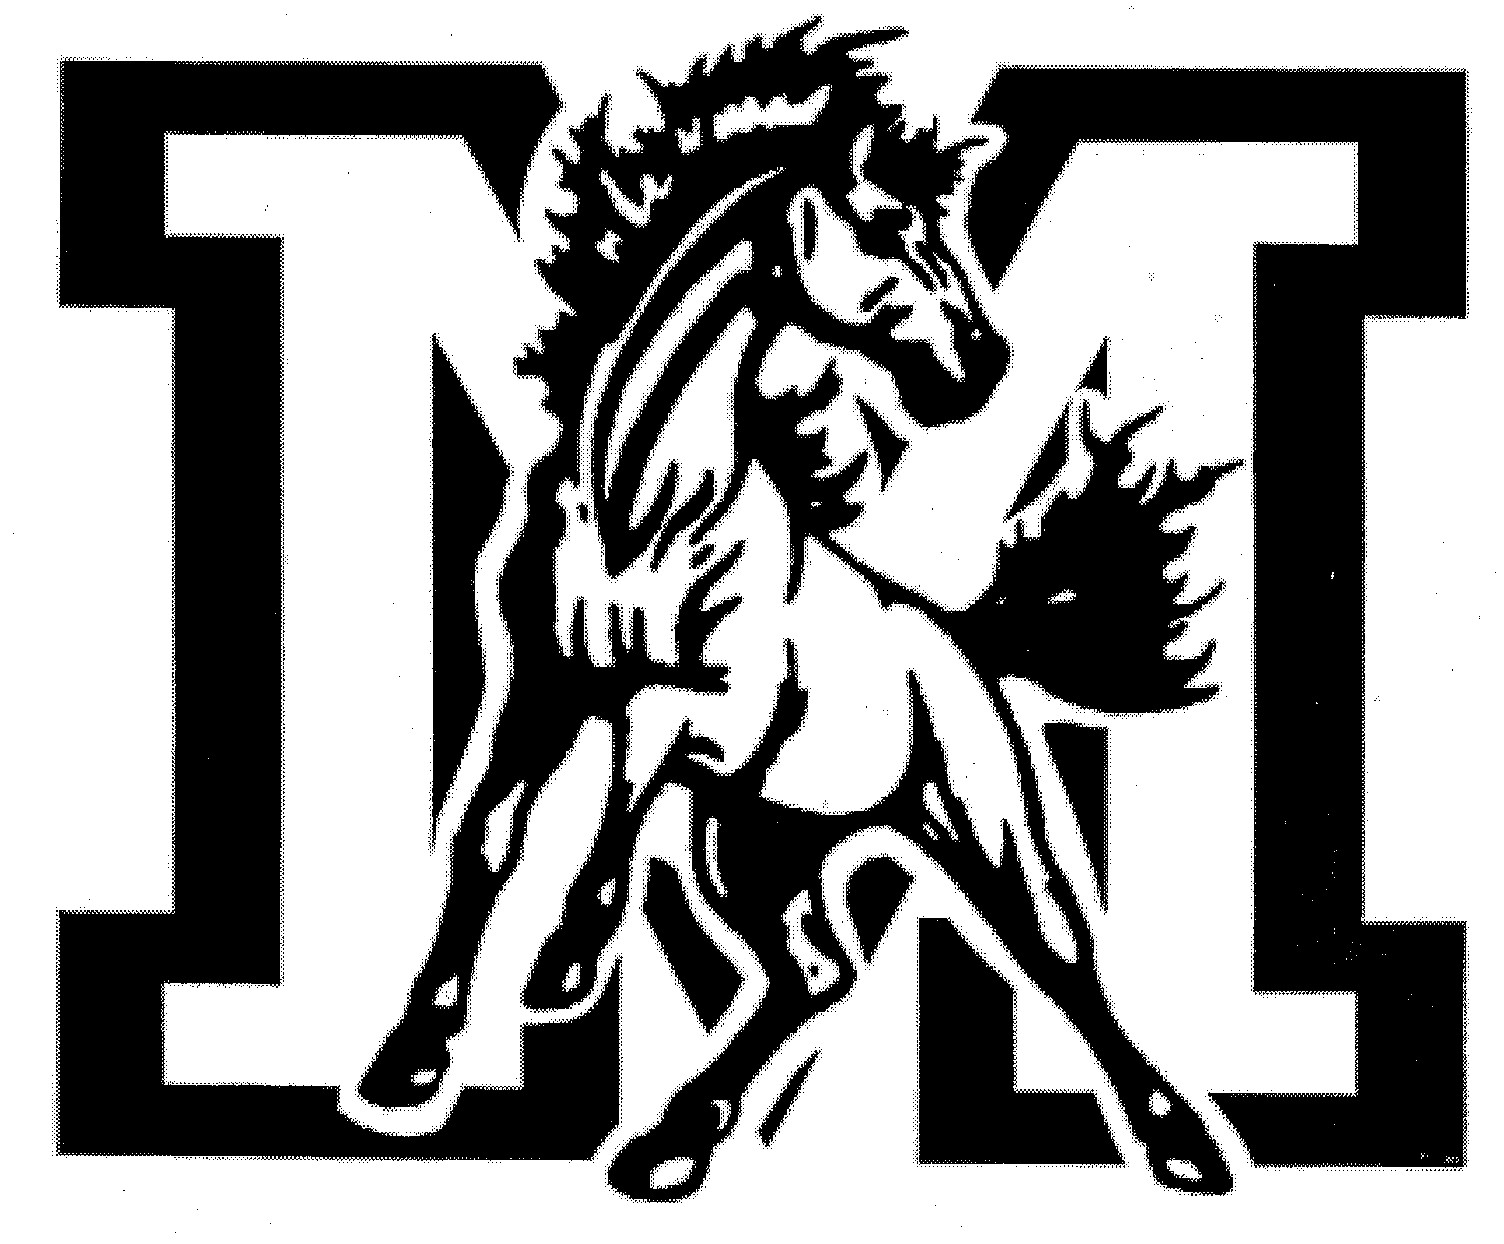 Mustang+Horse+Graphics Class Tuesday November 13 2012